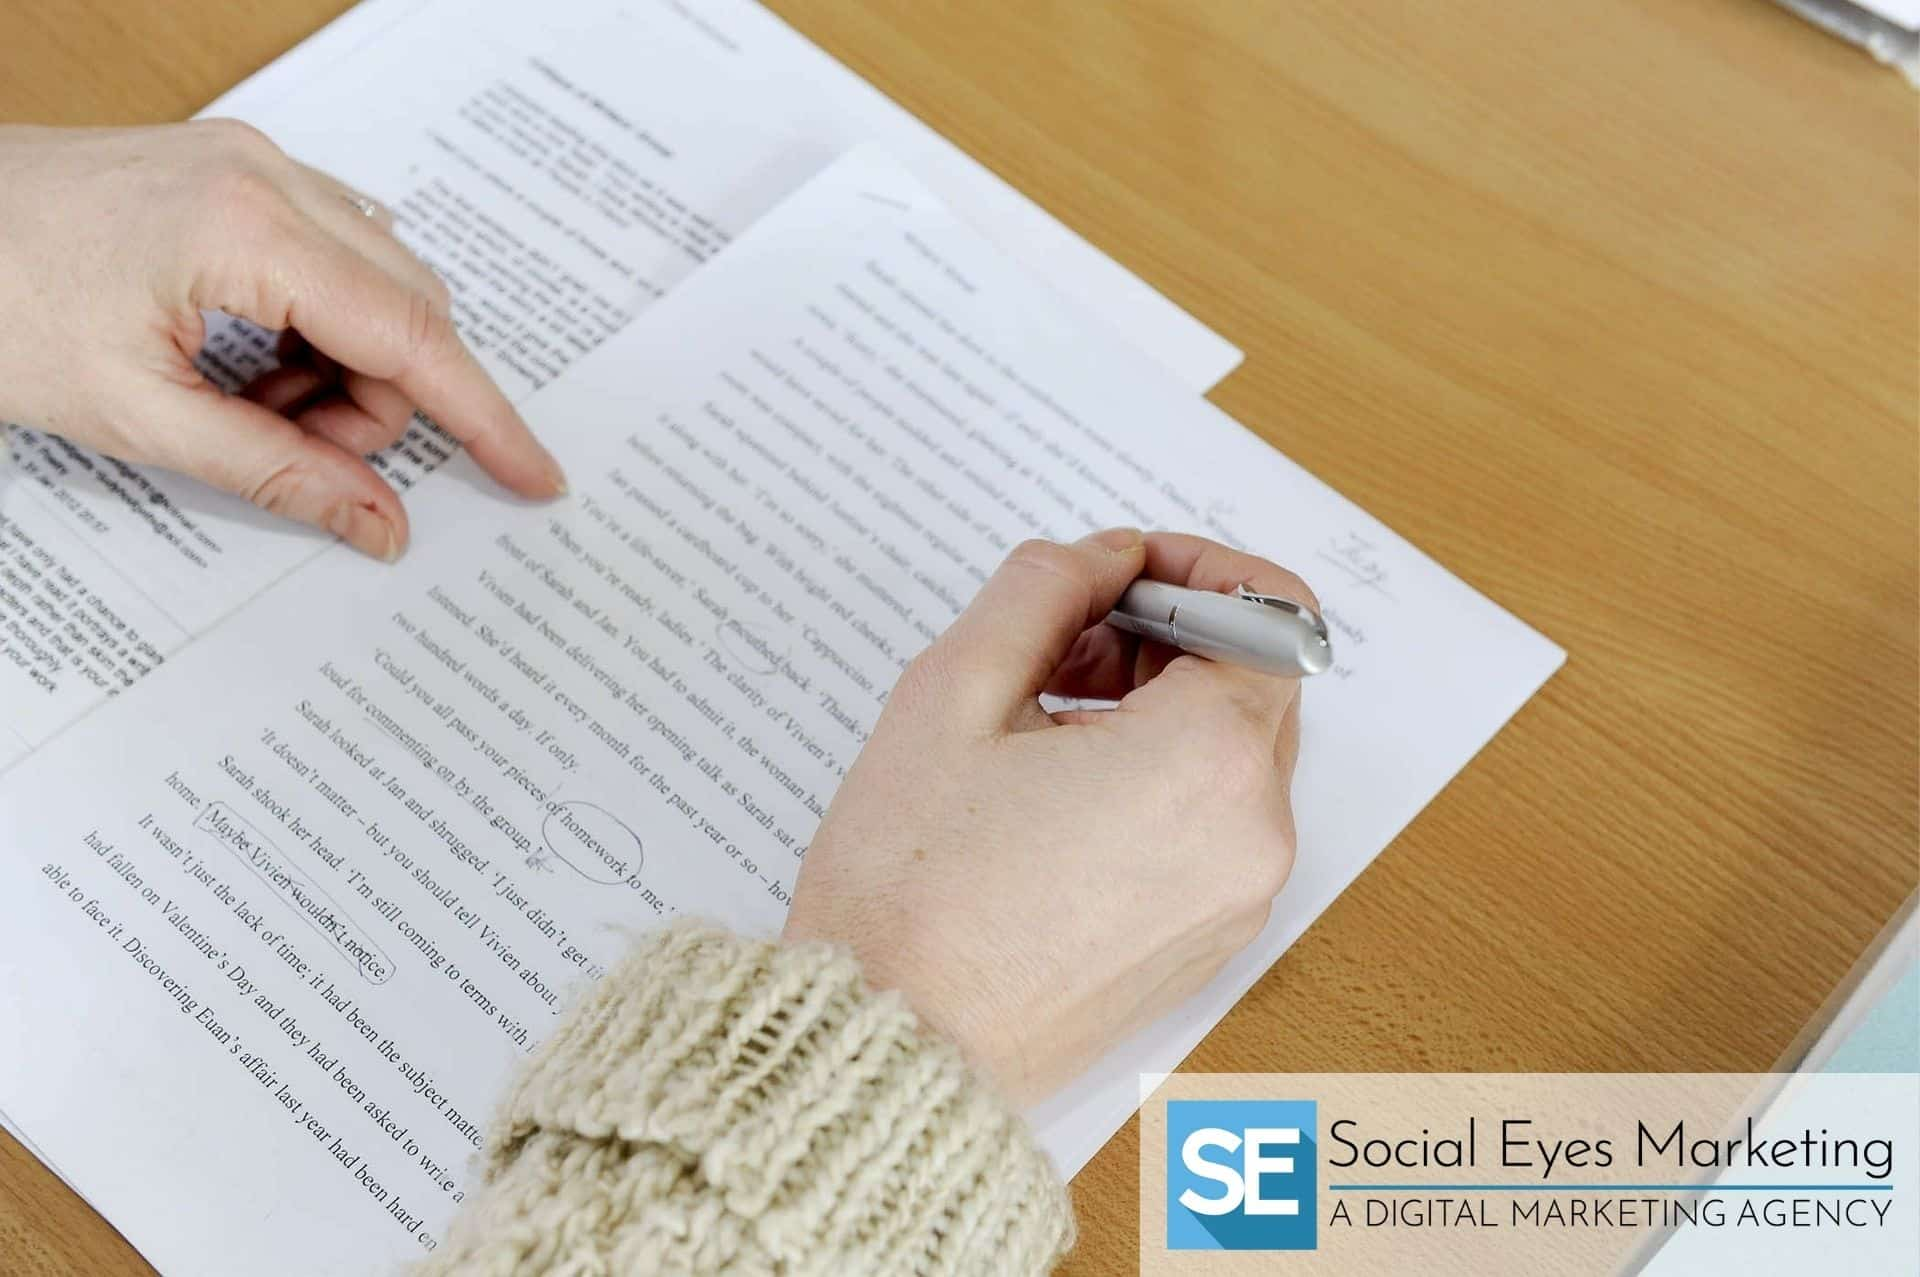 5 Tips For Writing Content That Converts